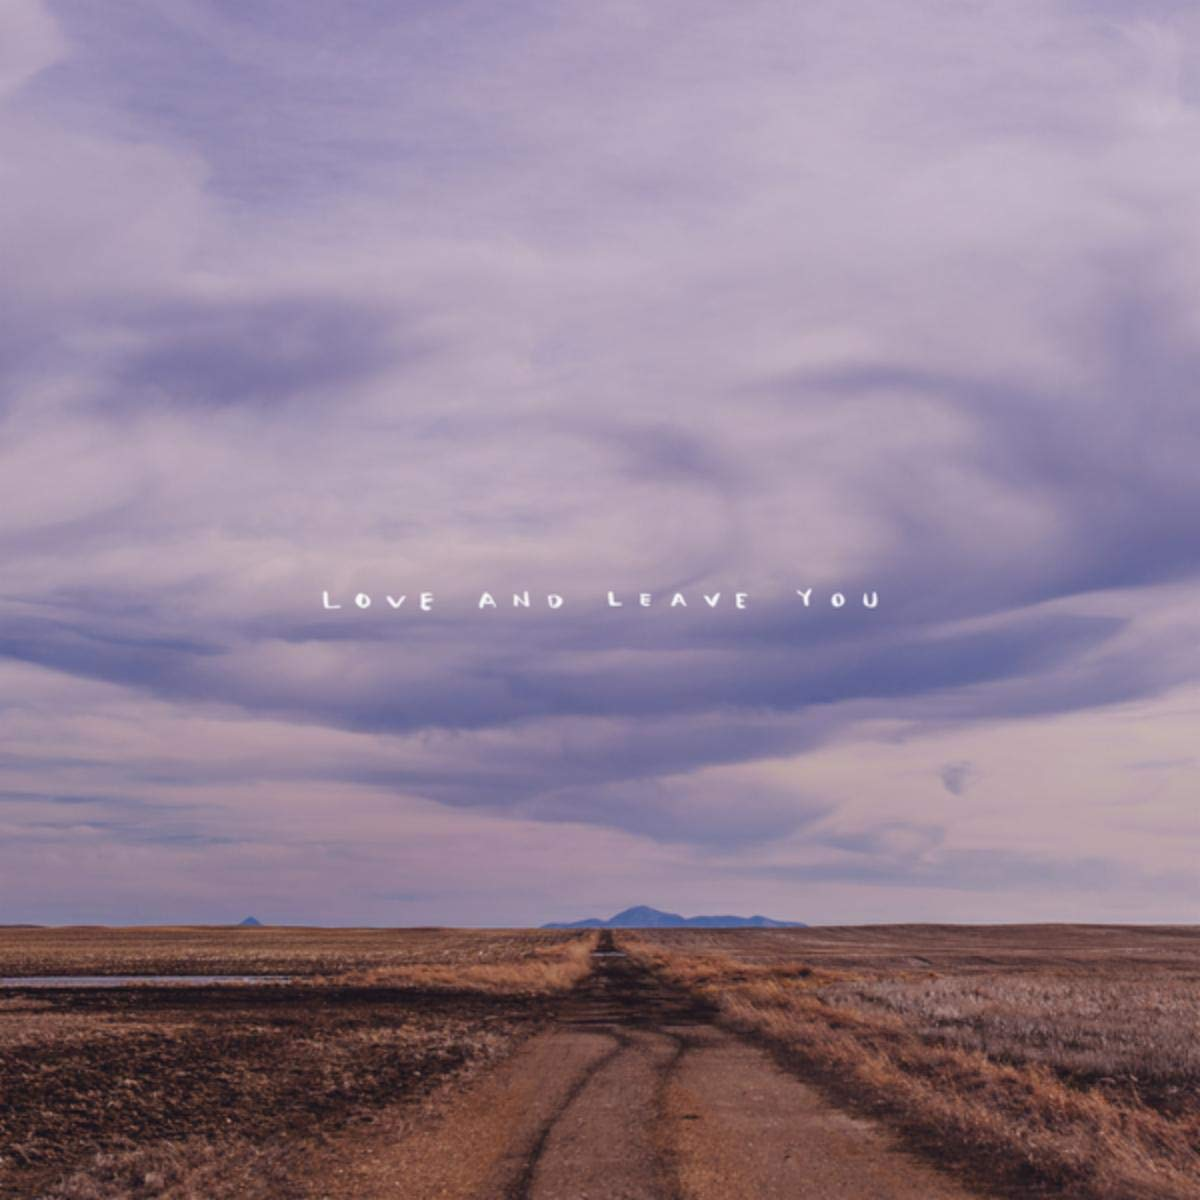 100 Mile House – Love and Leave You (2020) [FLAC]